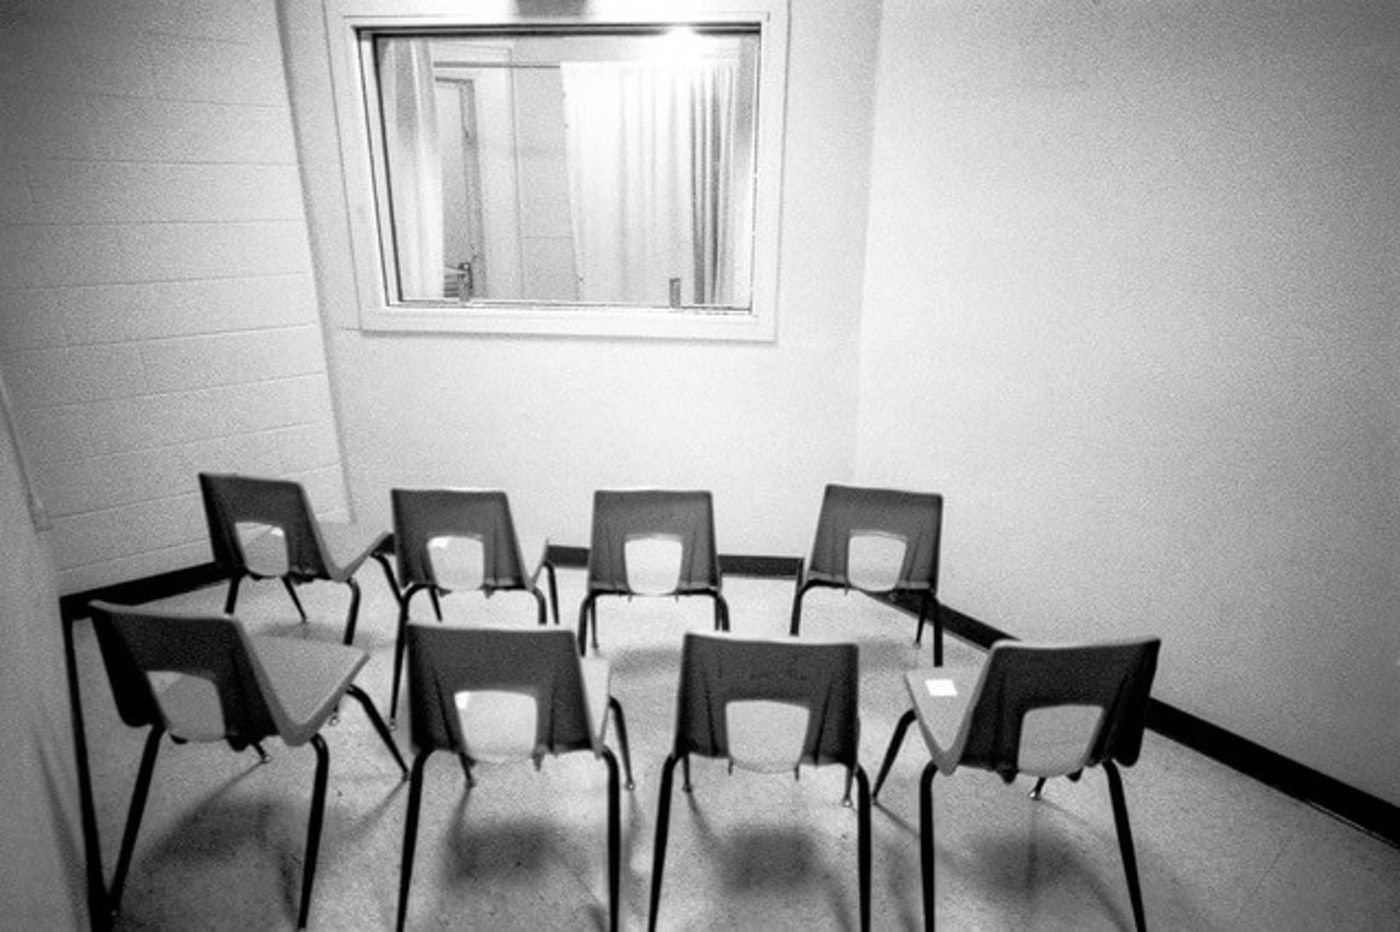 The observation room for Central Prison's execution chamber. (Photo via Scott Langley of deathpenaltyphoto.org)